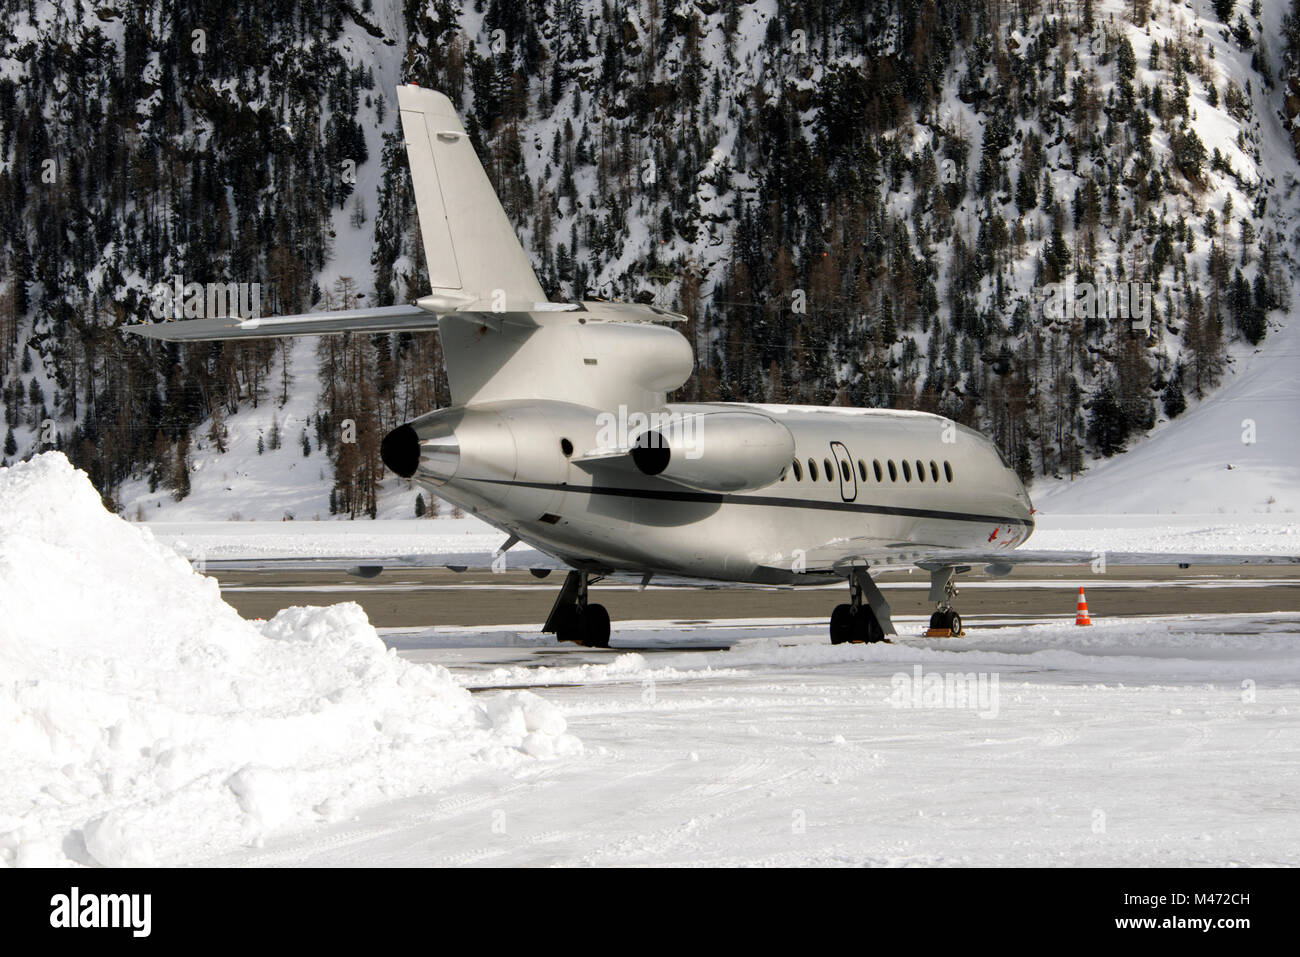 A private jet in the airport of St Moritz in the alps switzerland in winter - Stock Image